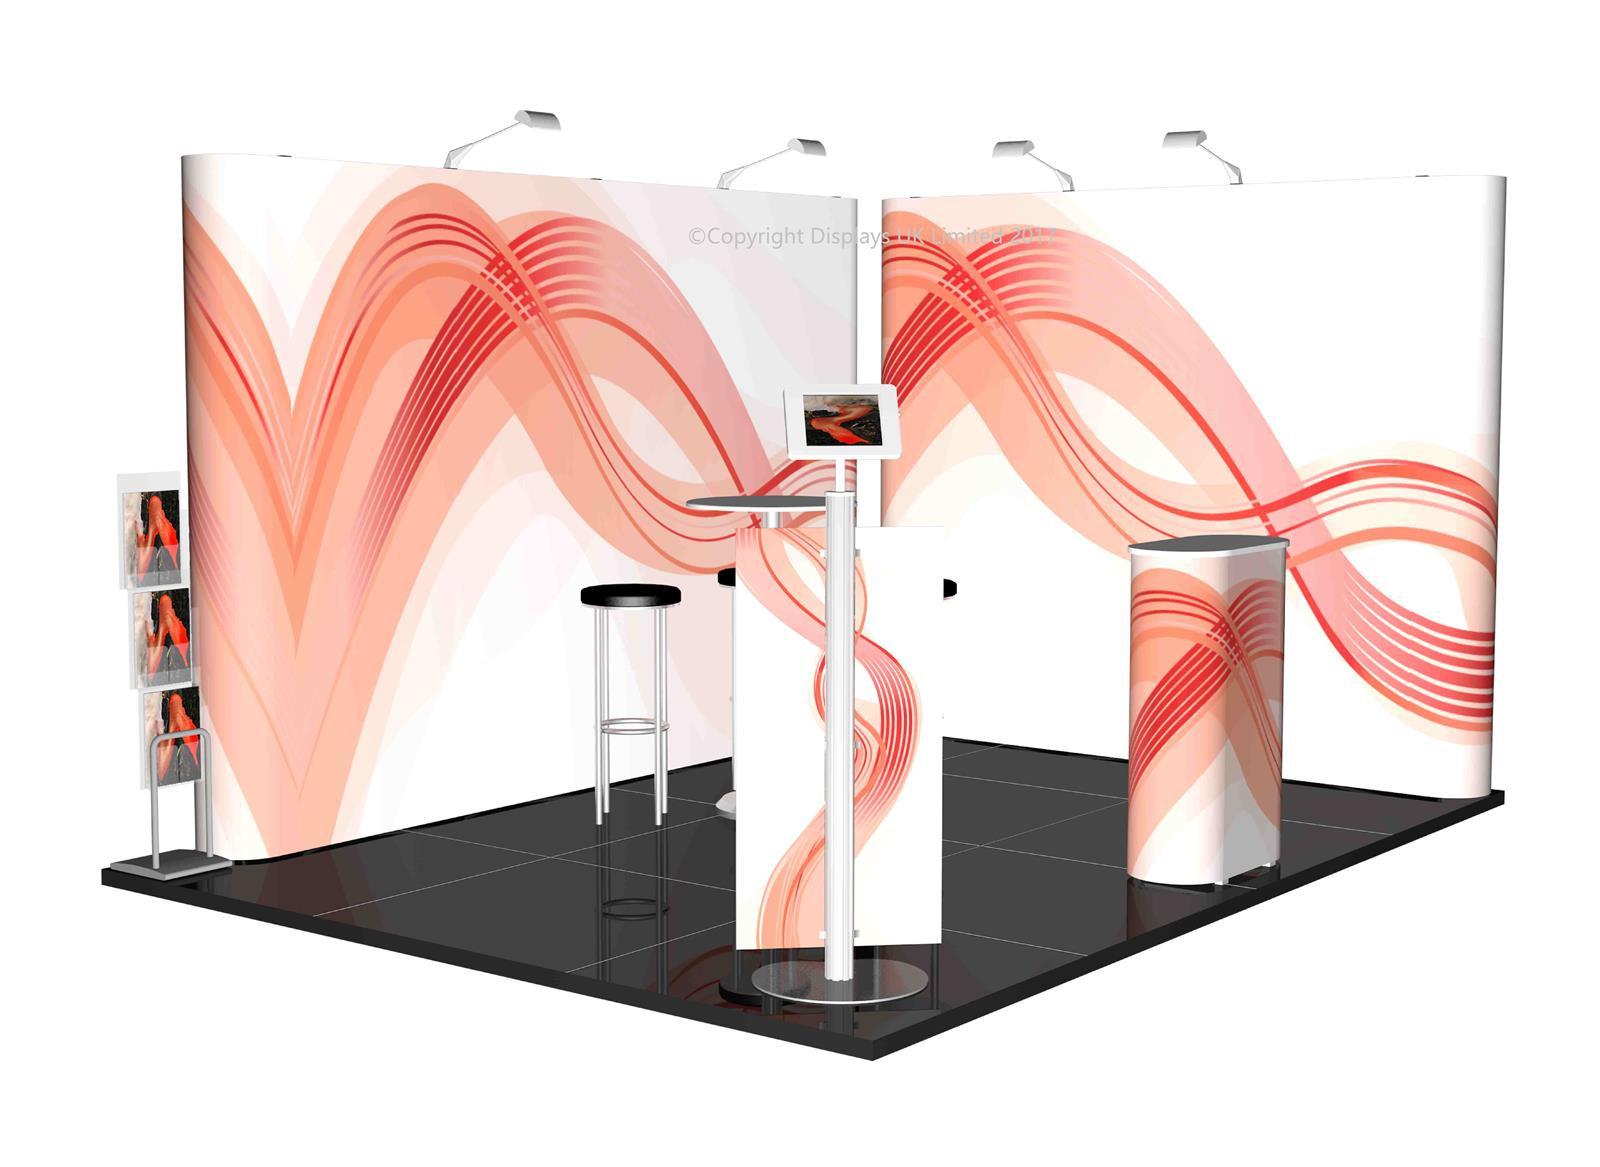 3m x 4m Linked Pop Up Exhibition Stand - Kit 23 - P4x3-2bS